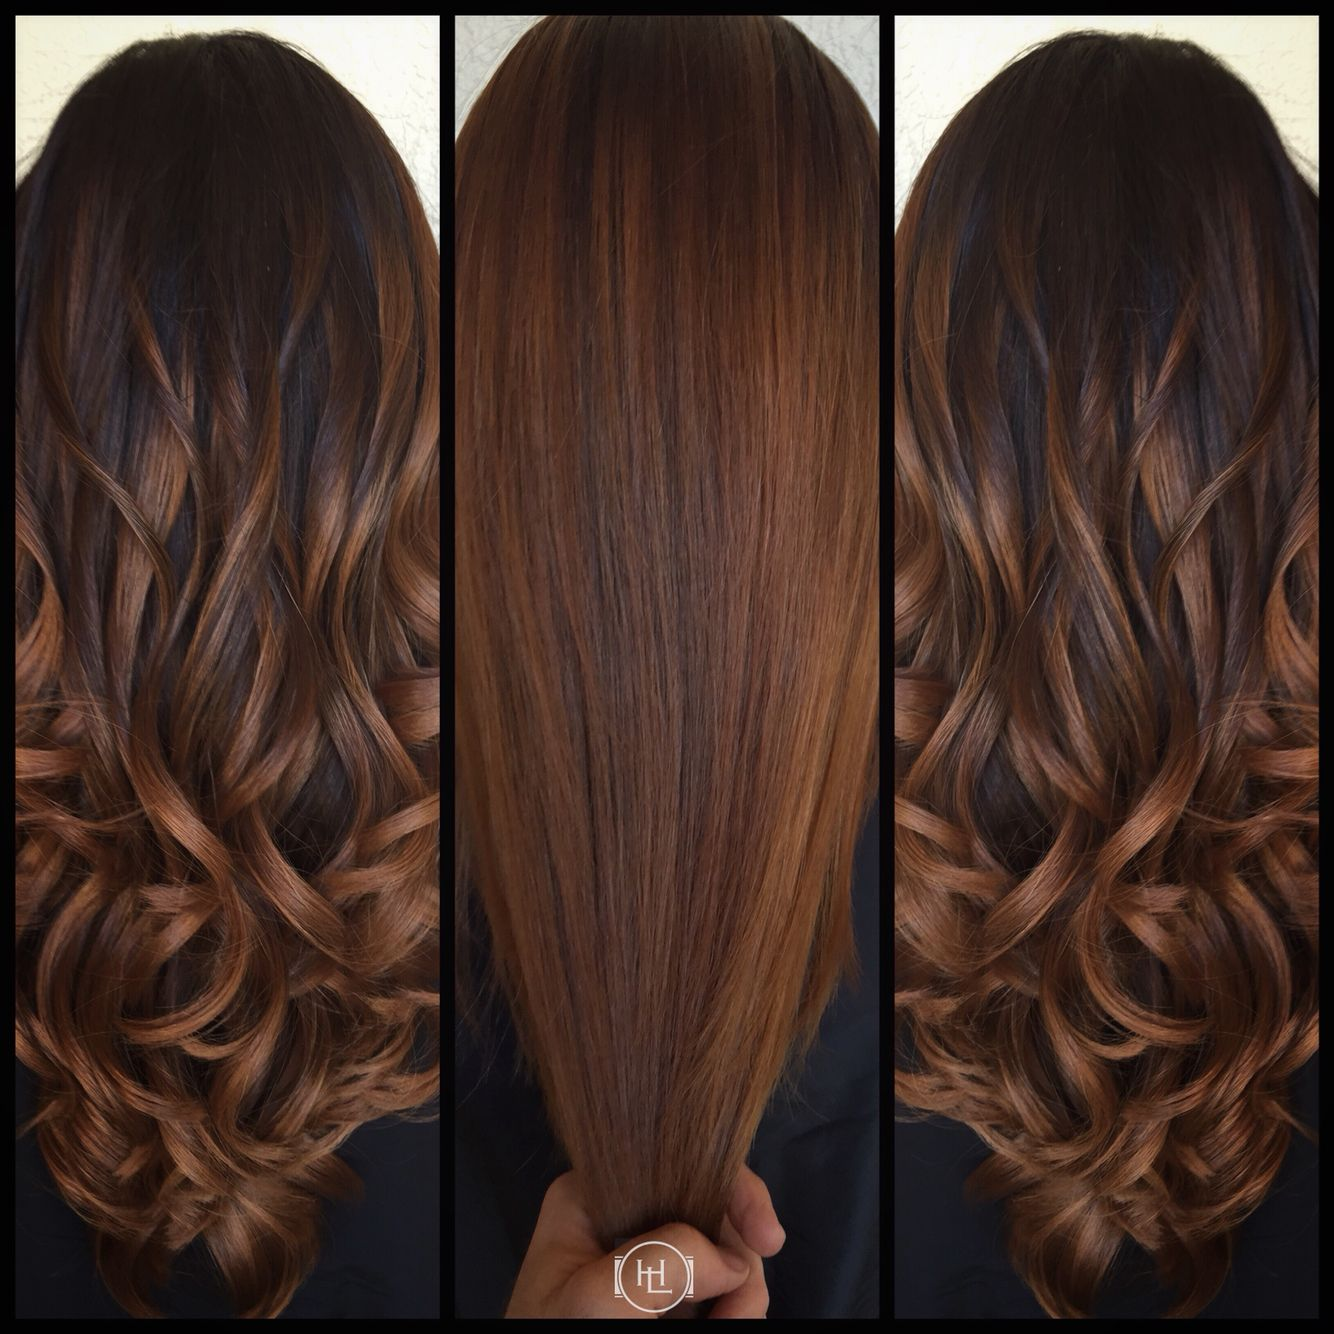 Pin By Kels Wright On Hair Colorcut Pinterest Balayage